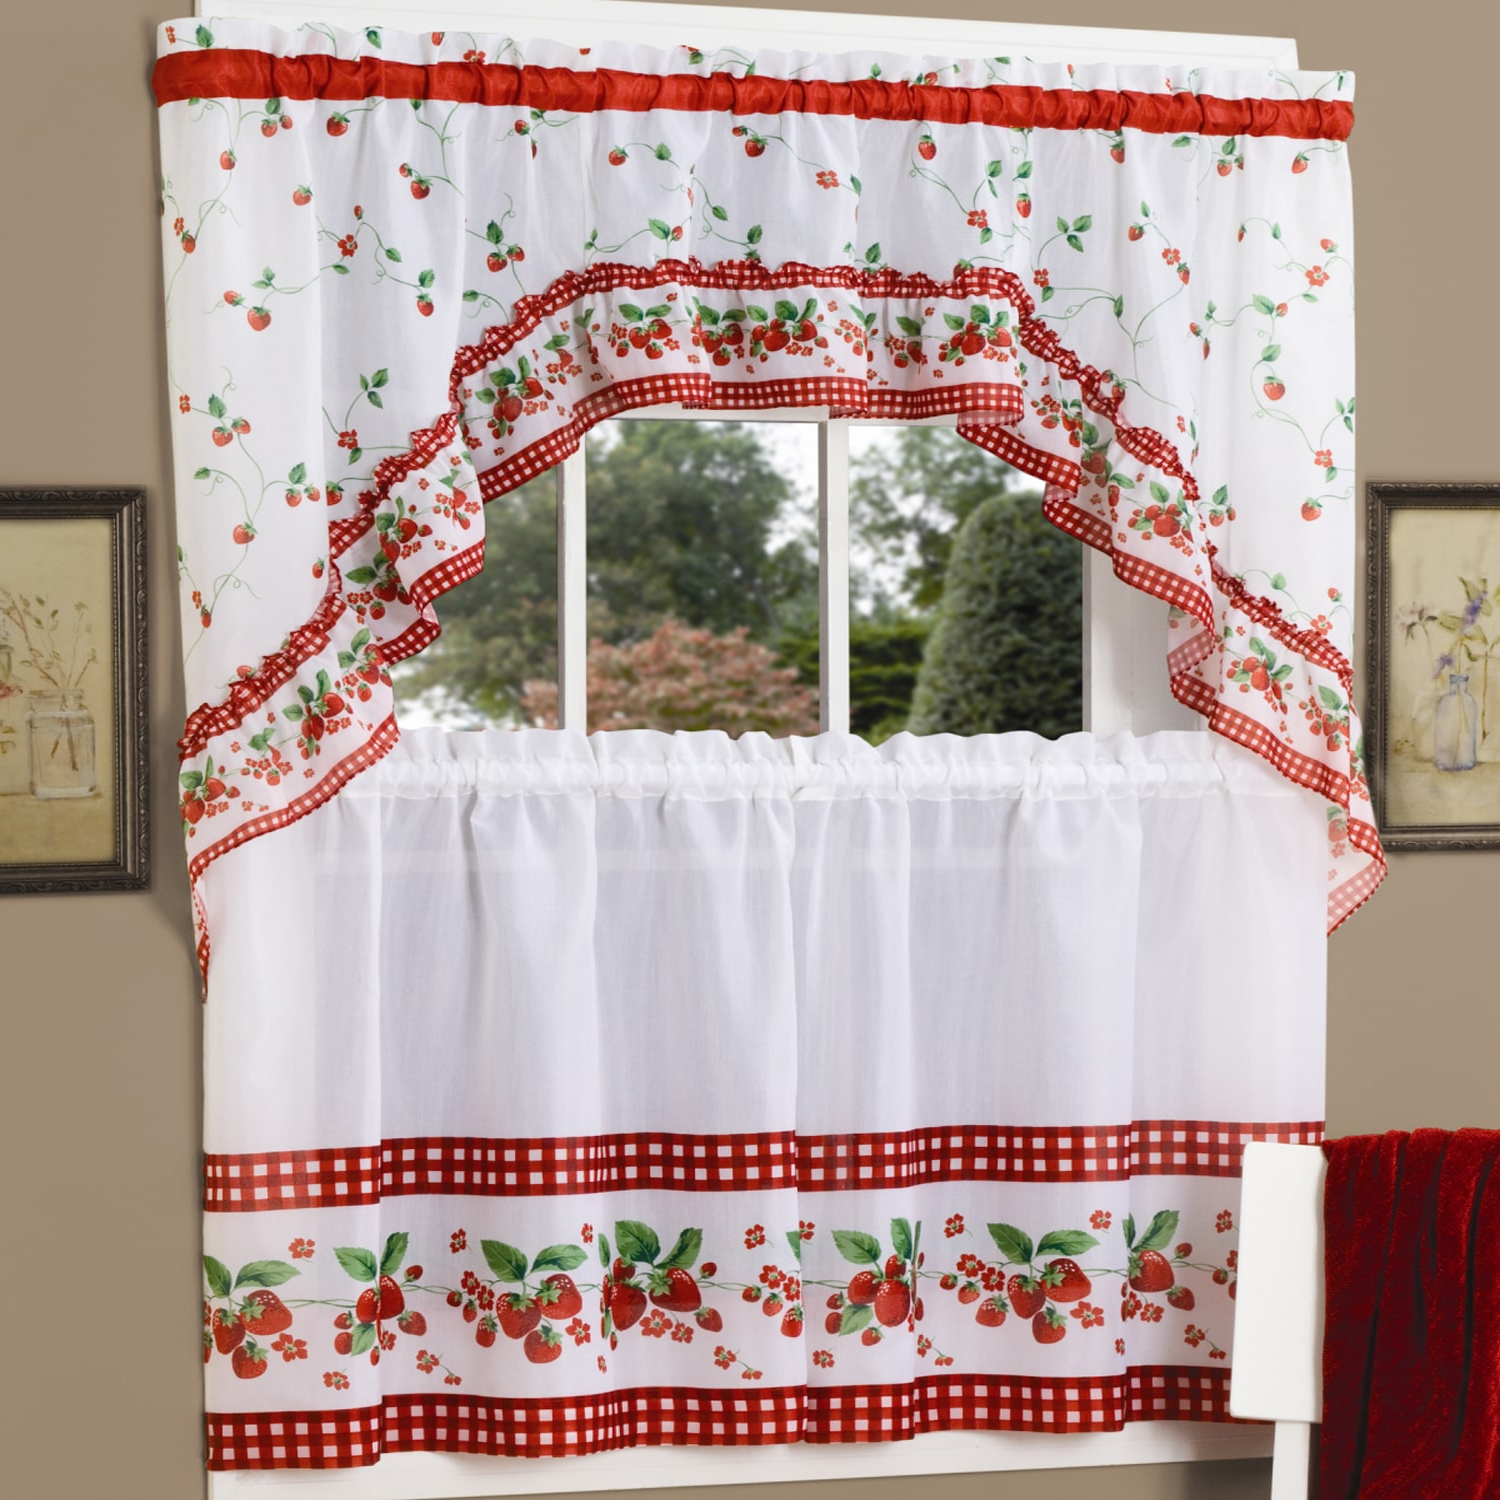 Traditional Two Piece Tailored Tier And Valance Window Curtains Throughout Latest Traditional Two Piece Tailored Tier And Swag Window Curtains (View 15 of 20)